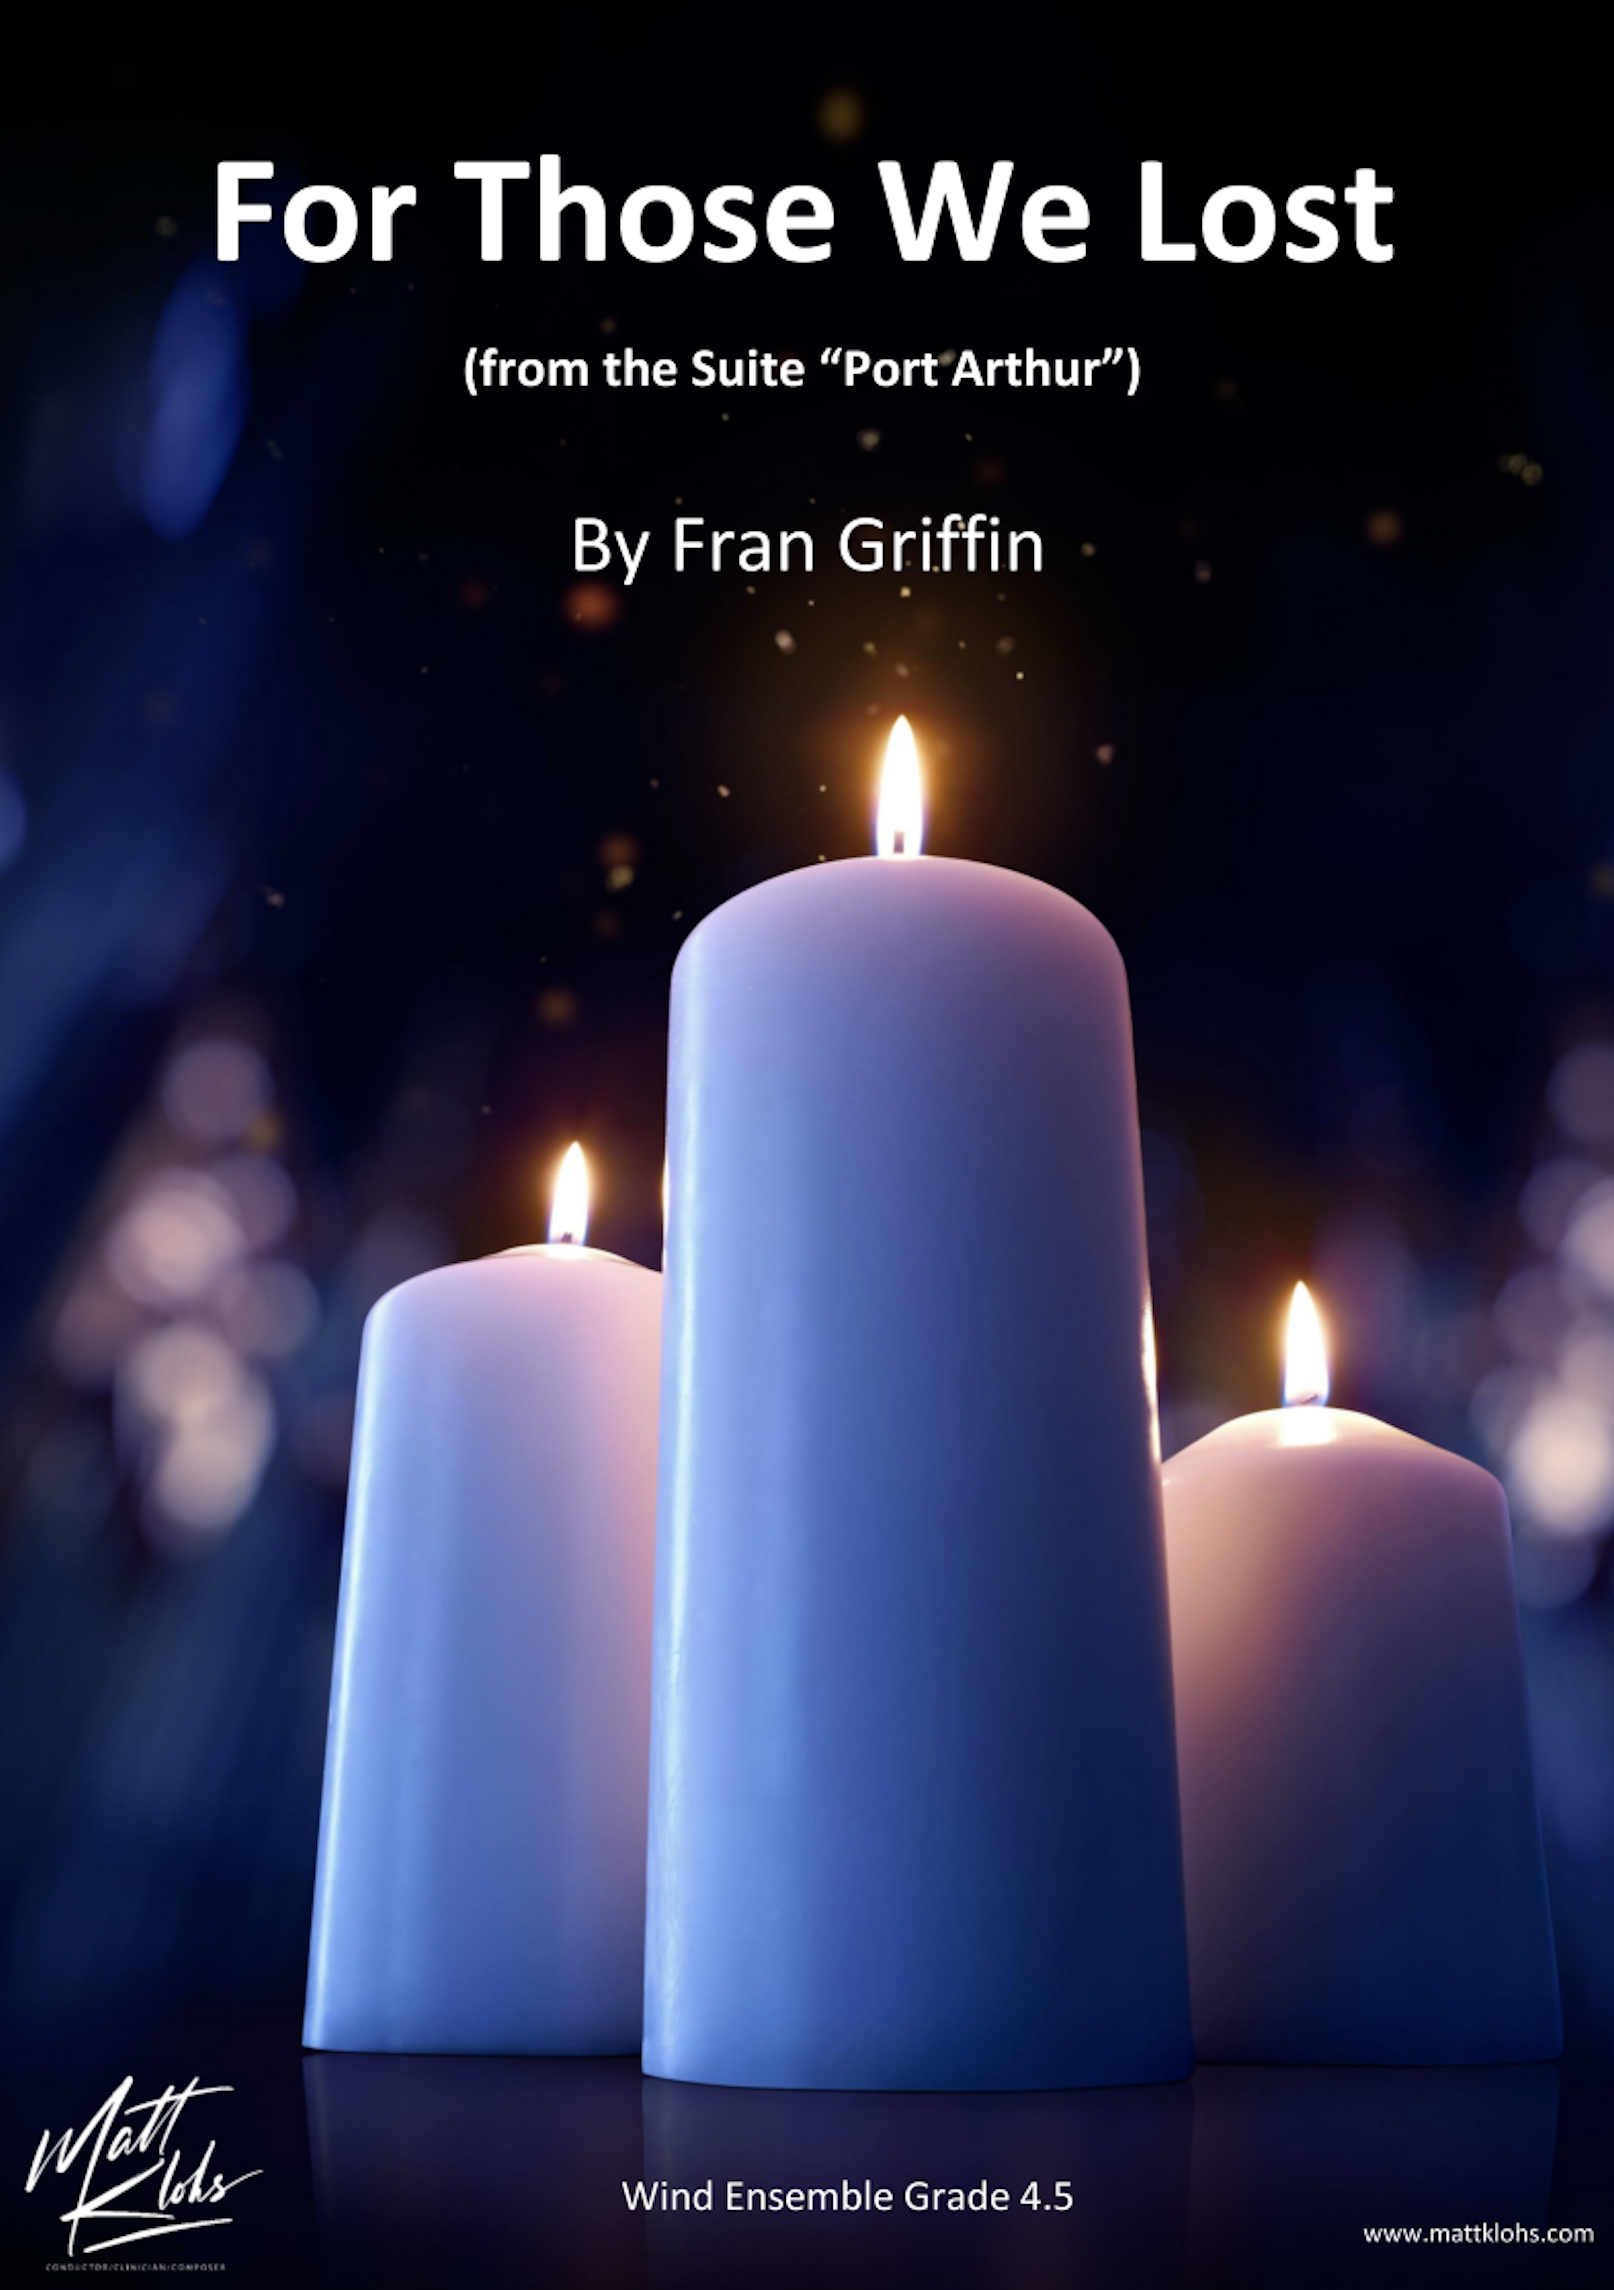 For Those We Lost by Fran Griffin